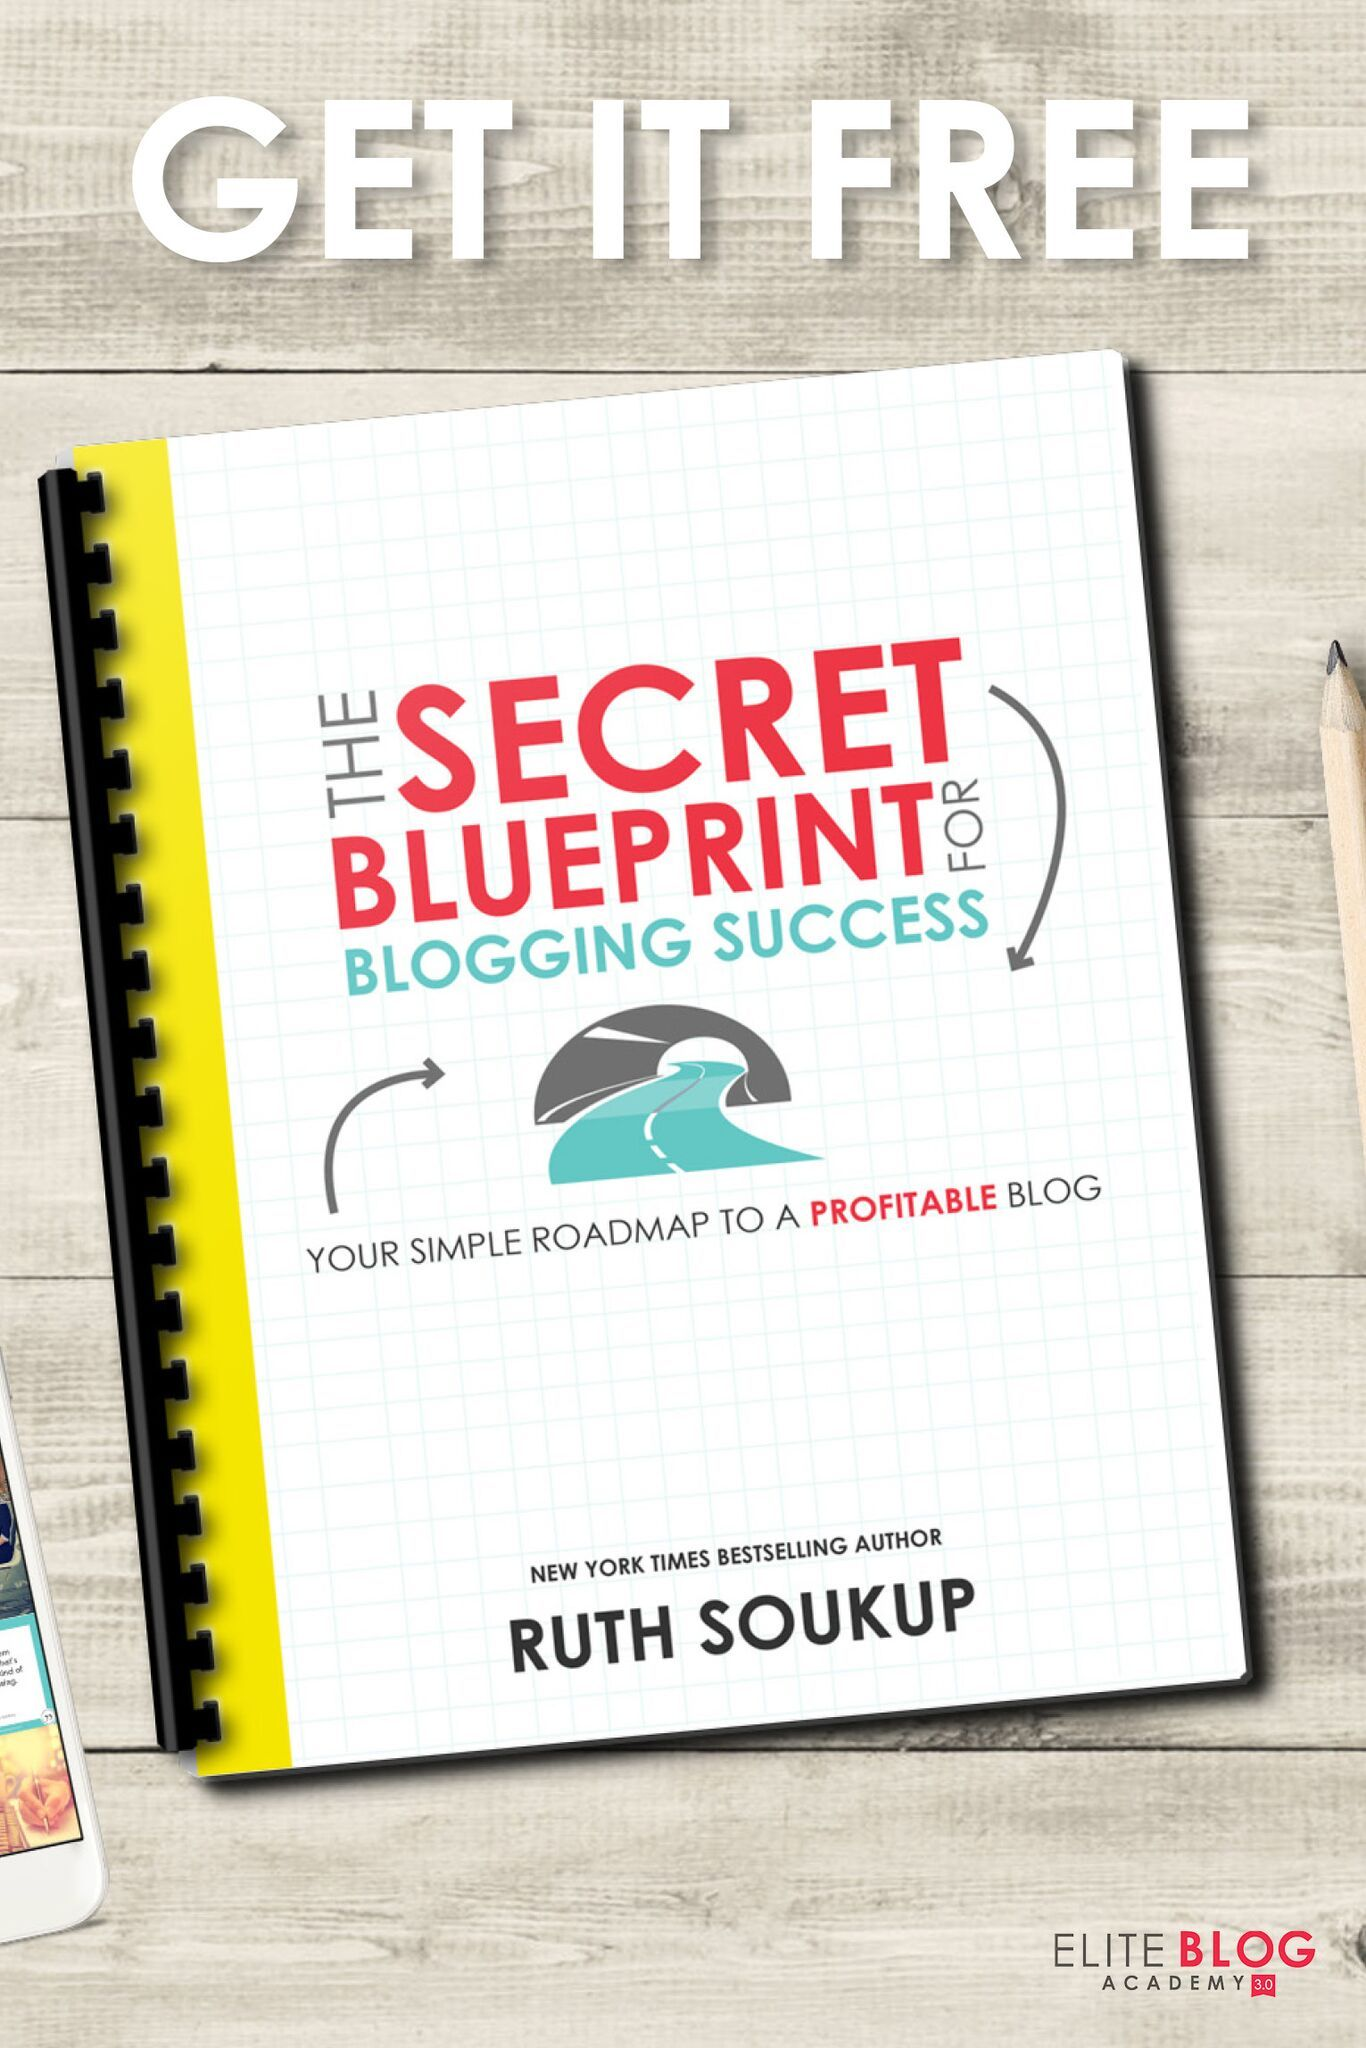 Ever wish you had a roadmap to blogging success this secret ever wish you had a roadmap to blogging success this secret blueprint shows you the exact steps you need to take to grow your blog fast and monetize malvernweather Image collections